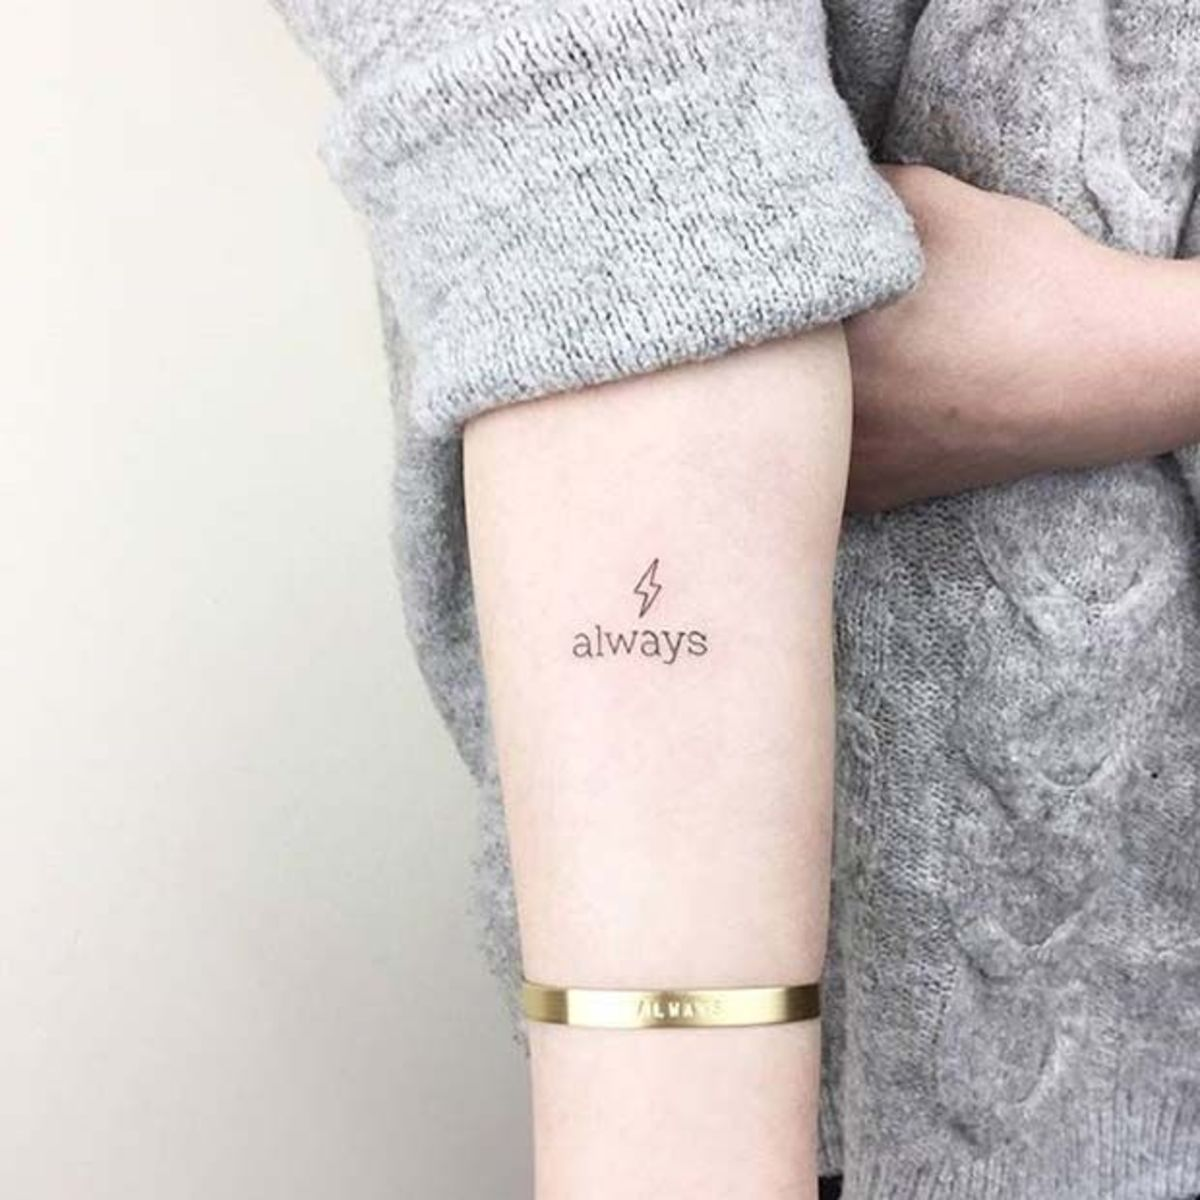 25 Gorgeous And Girly Harry Potter Tattoos Tattoo Ideas Artists